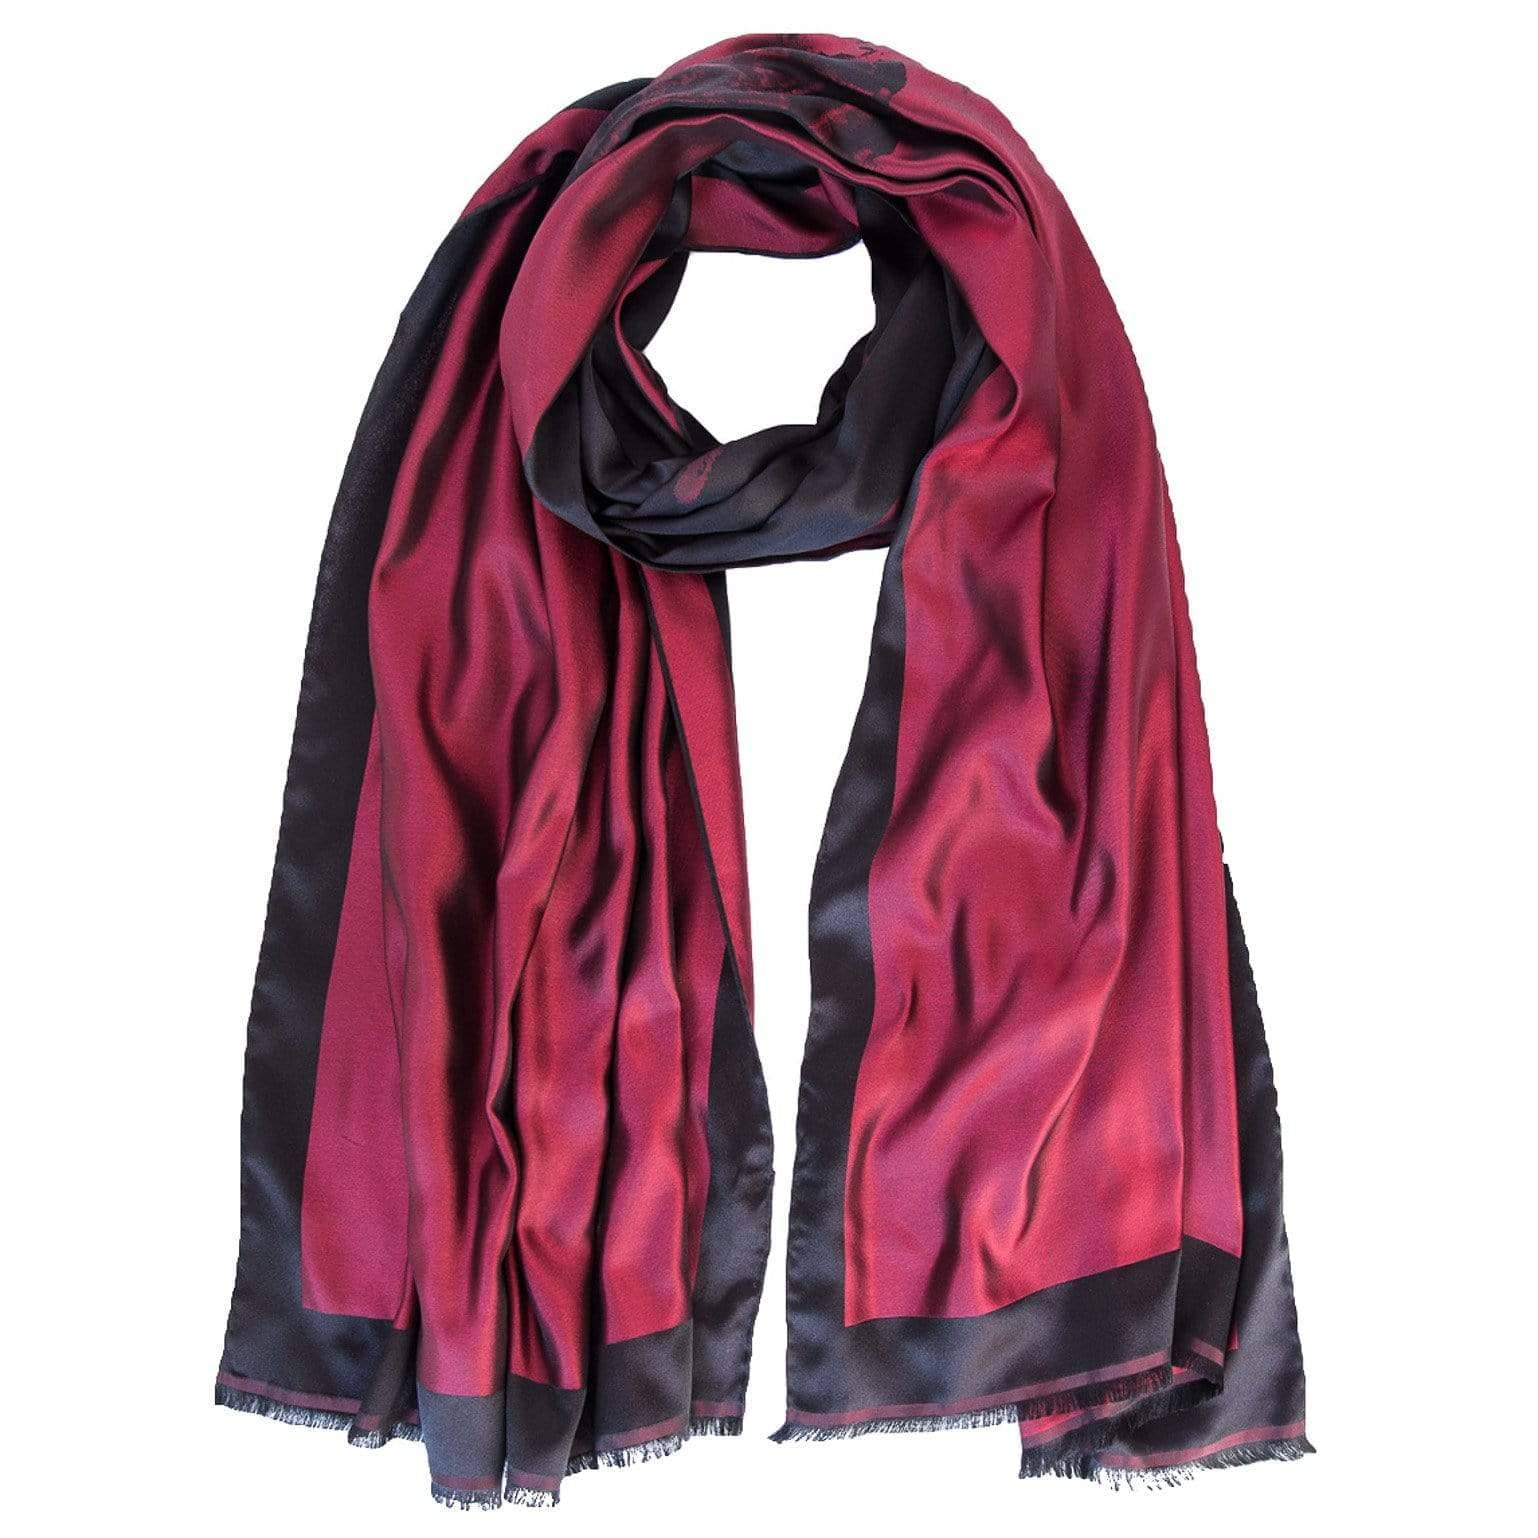 Ruby Red Silk Evening Shawl - Handmade in Italy